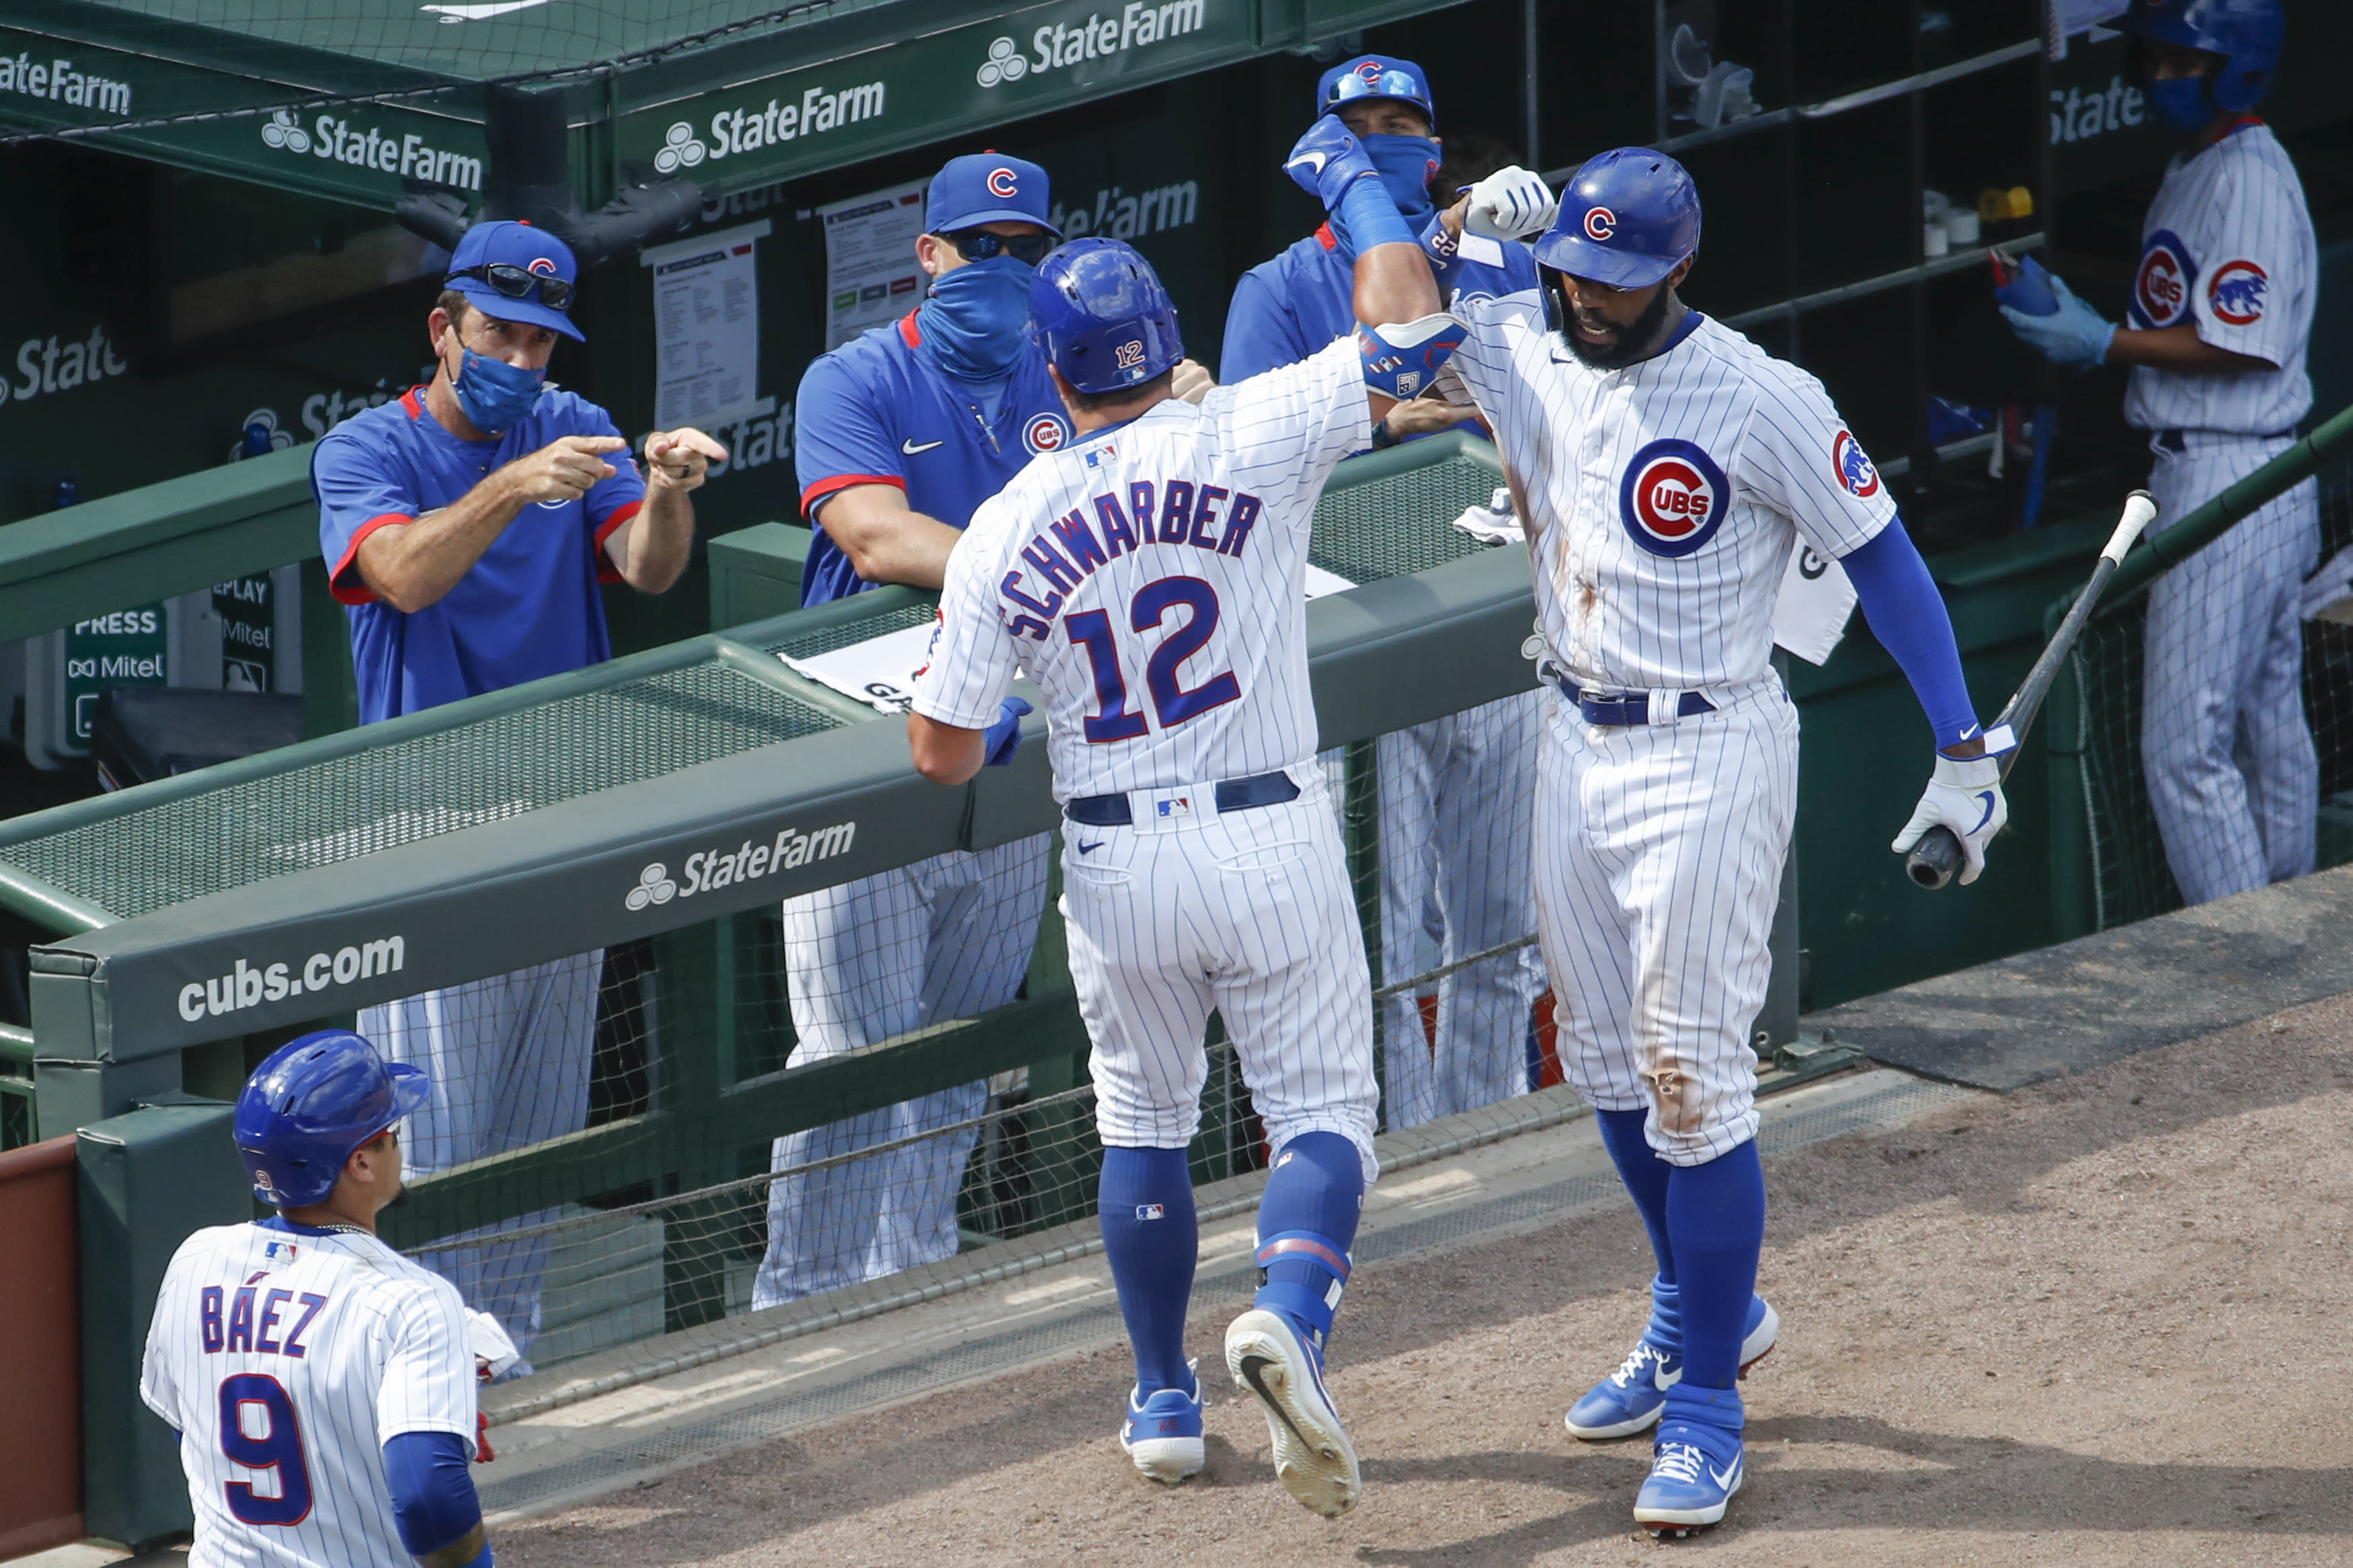 Chicago Cubs' Kyle Schwarber, center celebrates with Jason Heyward, right, after hitting a two-run home run against the Chicago White Sox during the sixth inning of a baseball game, Sunday, Aug. 23, 2020, in Chicago. (AP Photo/Kamil Krzaczynski)